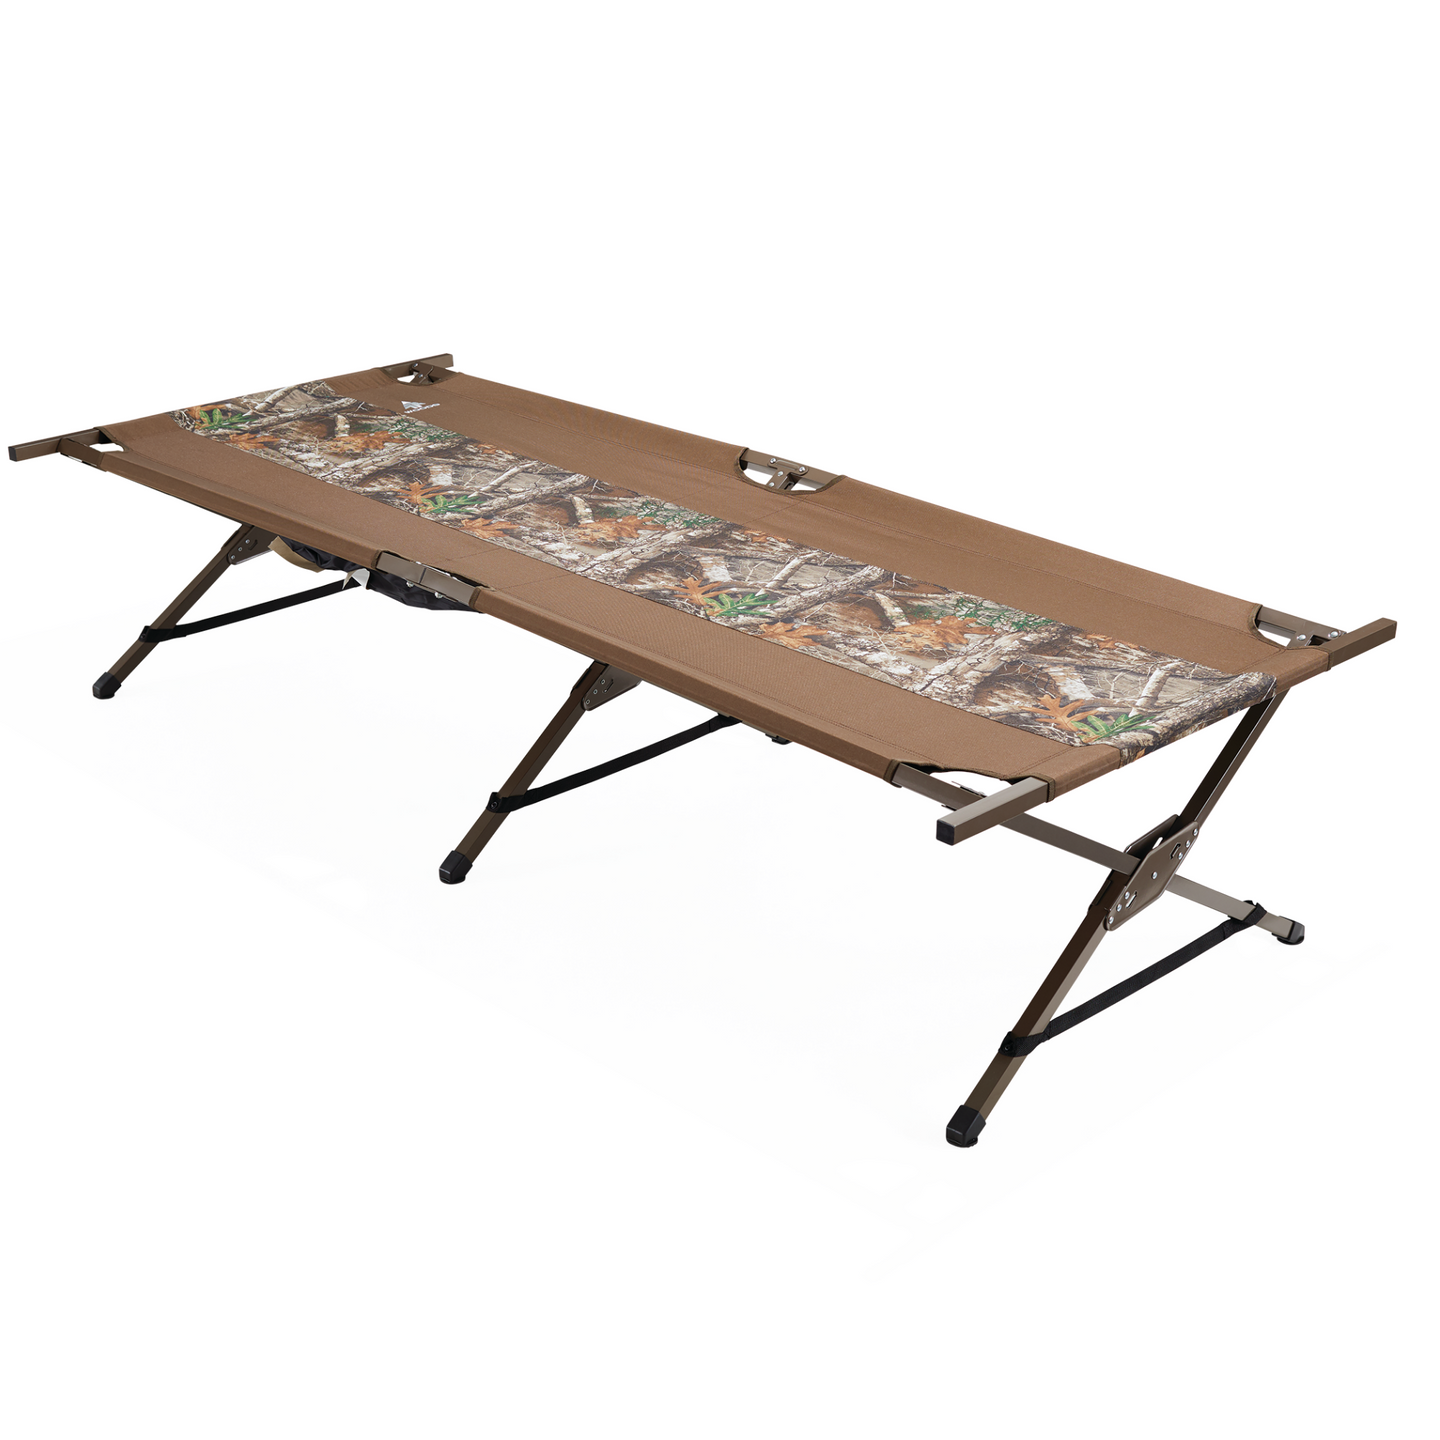 Woods King Portable Folding Extra Wide Camping Cot - Camouflage